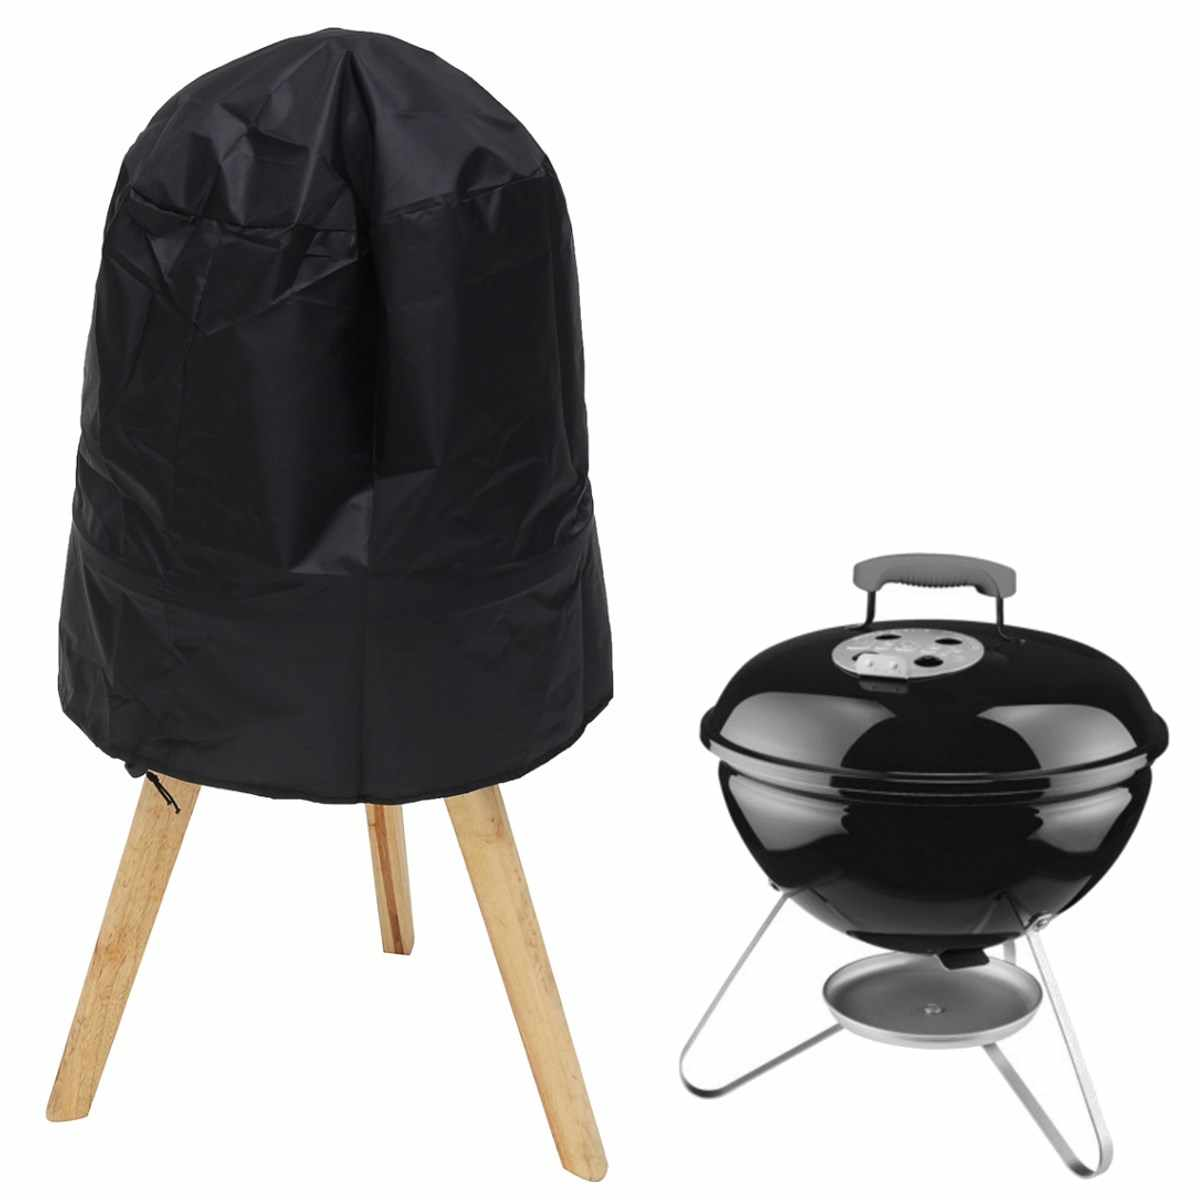 "Round BBQ Grill Cover 14""-15"" 38*40cm Fits For Weber Smokey Joe Serving Indoor Outdoor Dust Protector Black Silver Color"